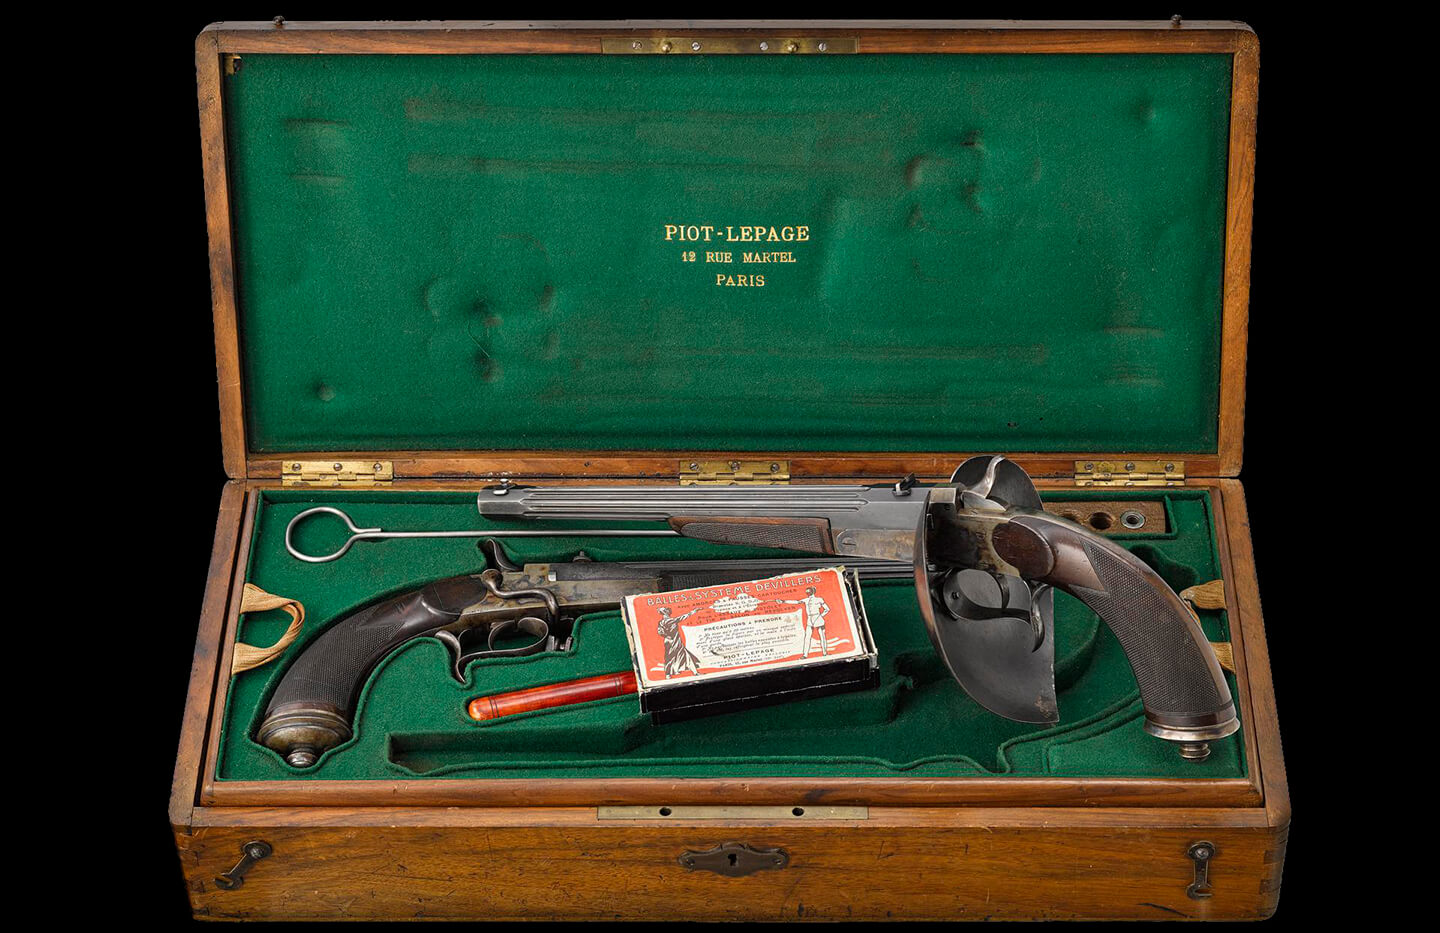 a case with two duelling pistols and accessories inside